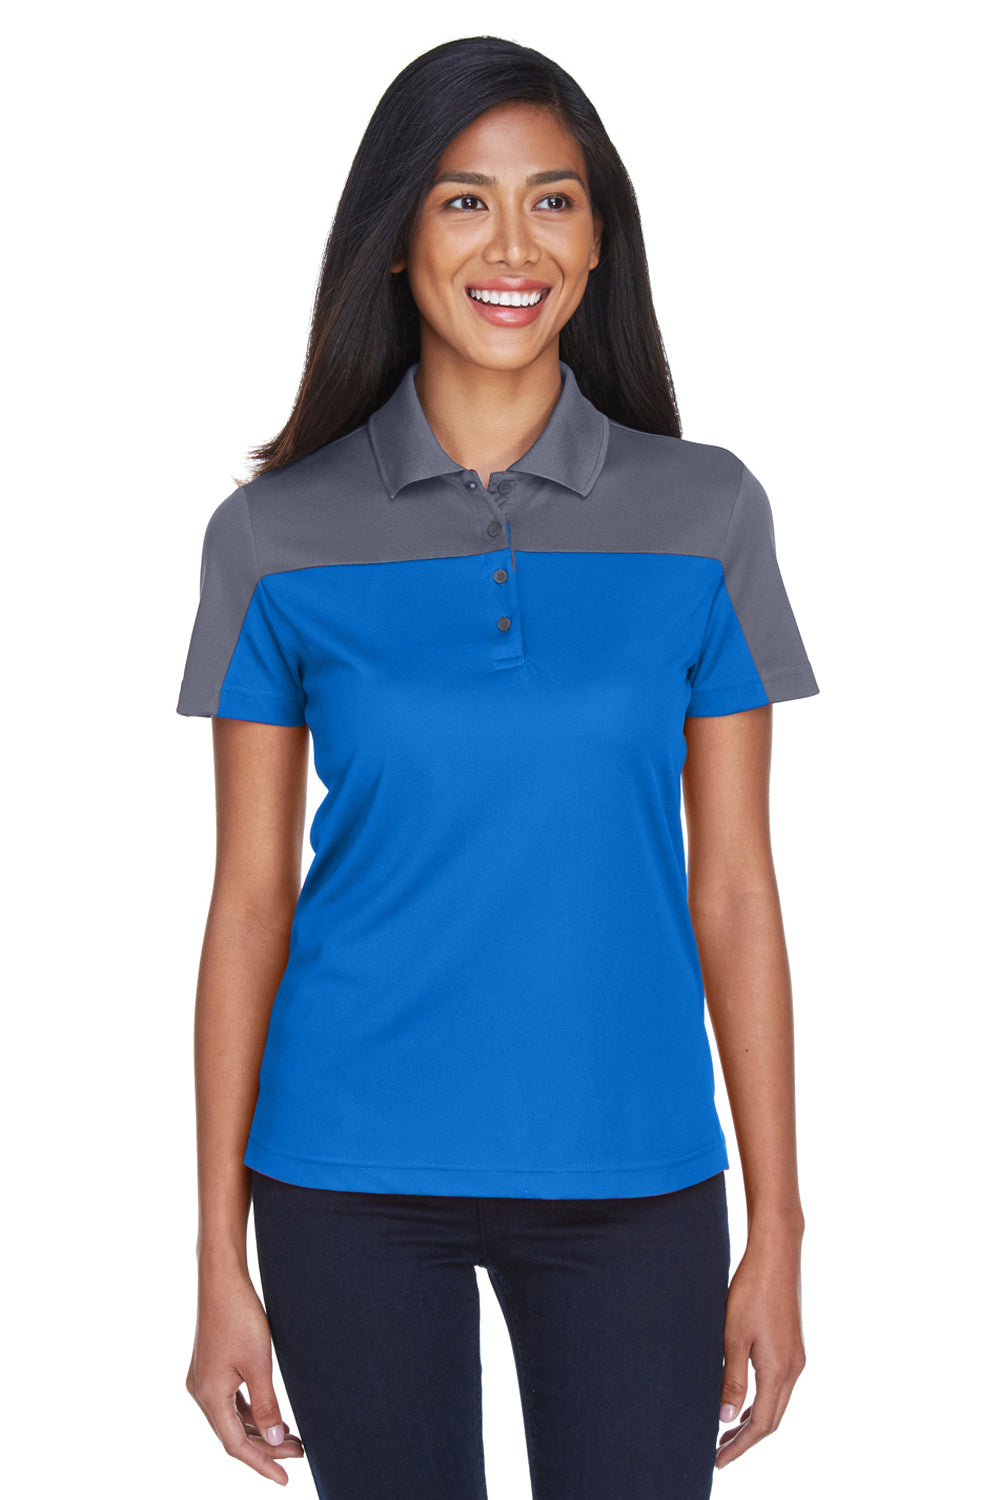 Core 365 CE101W Womens Balance Performance Moisture Wicking Short Sleeve Polo Shirt Royal Blue/Grey Front